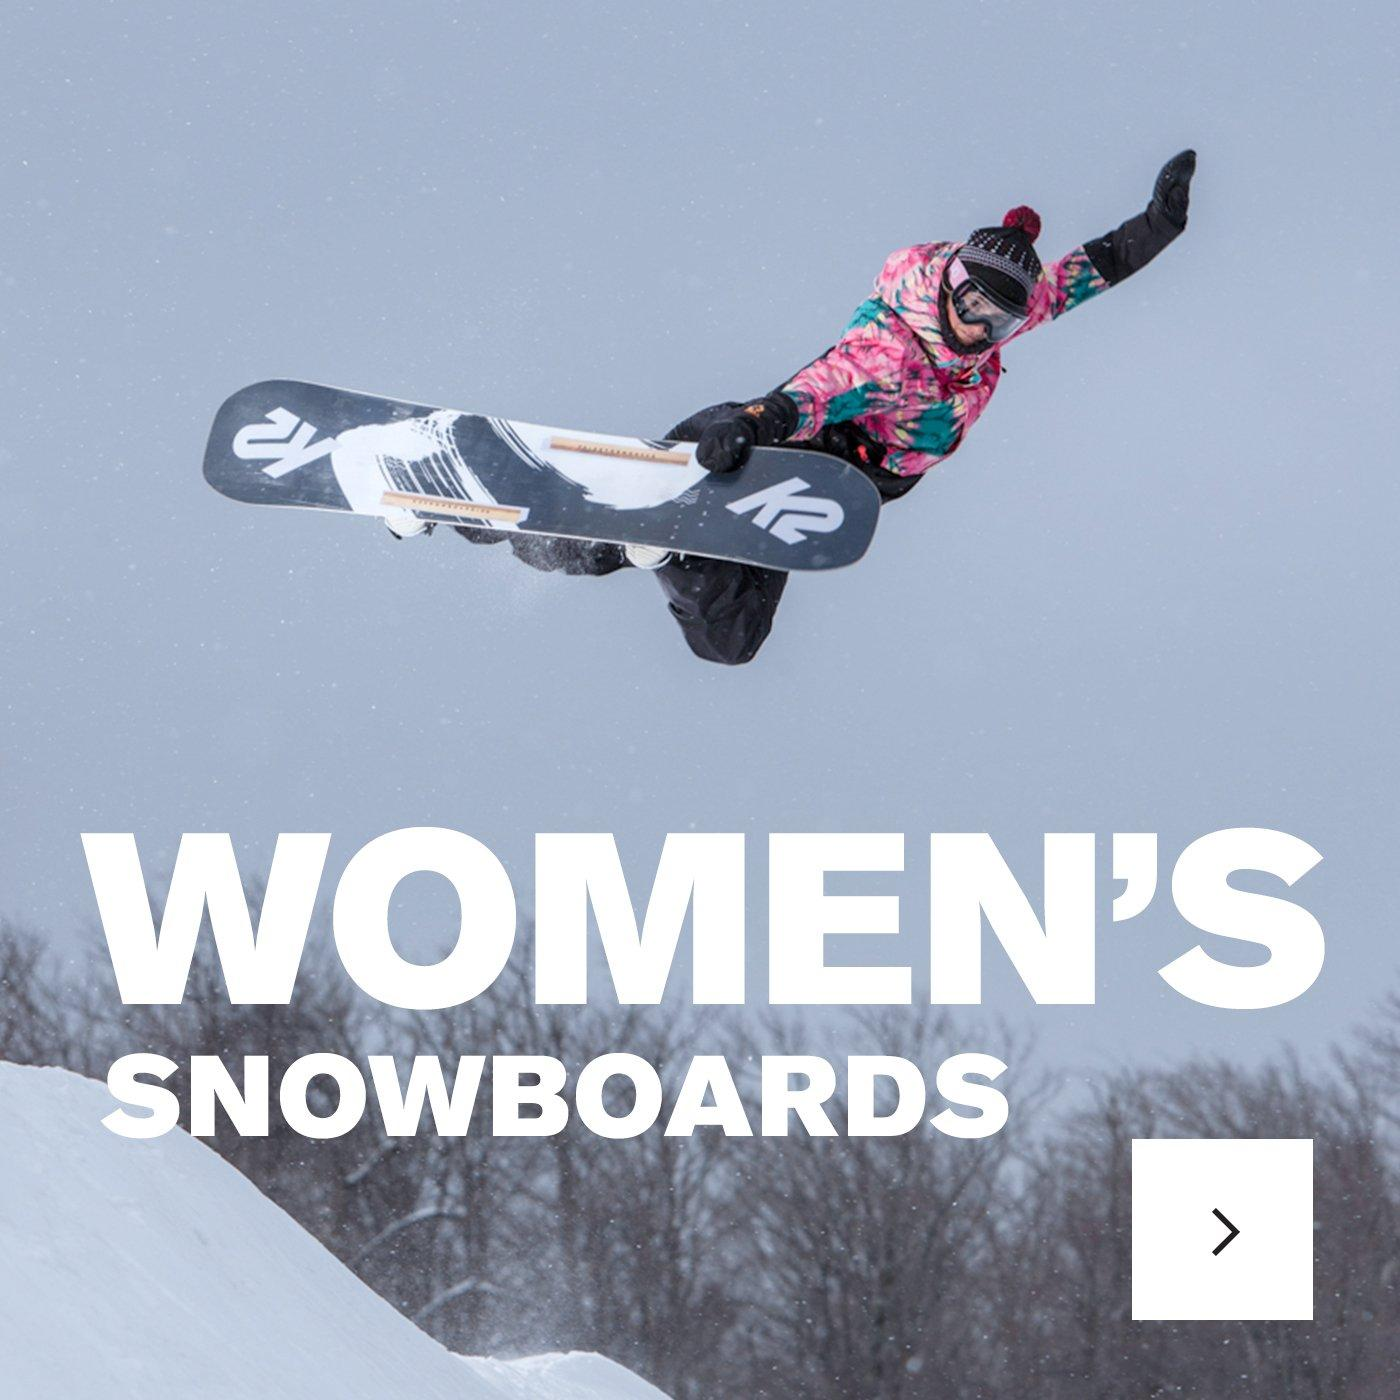 Snowboarding dating site